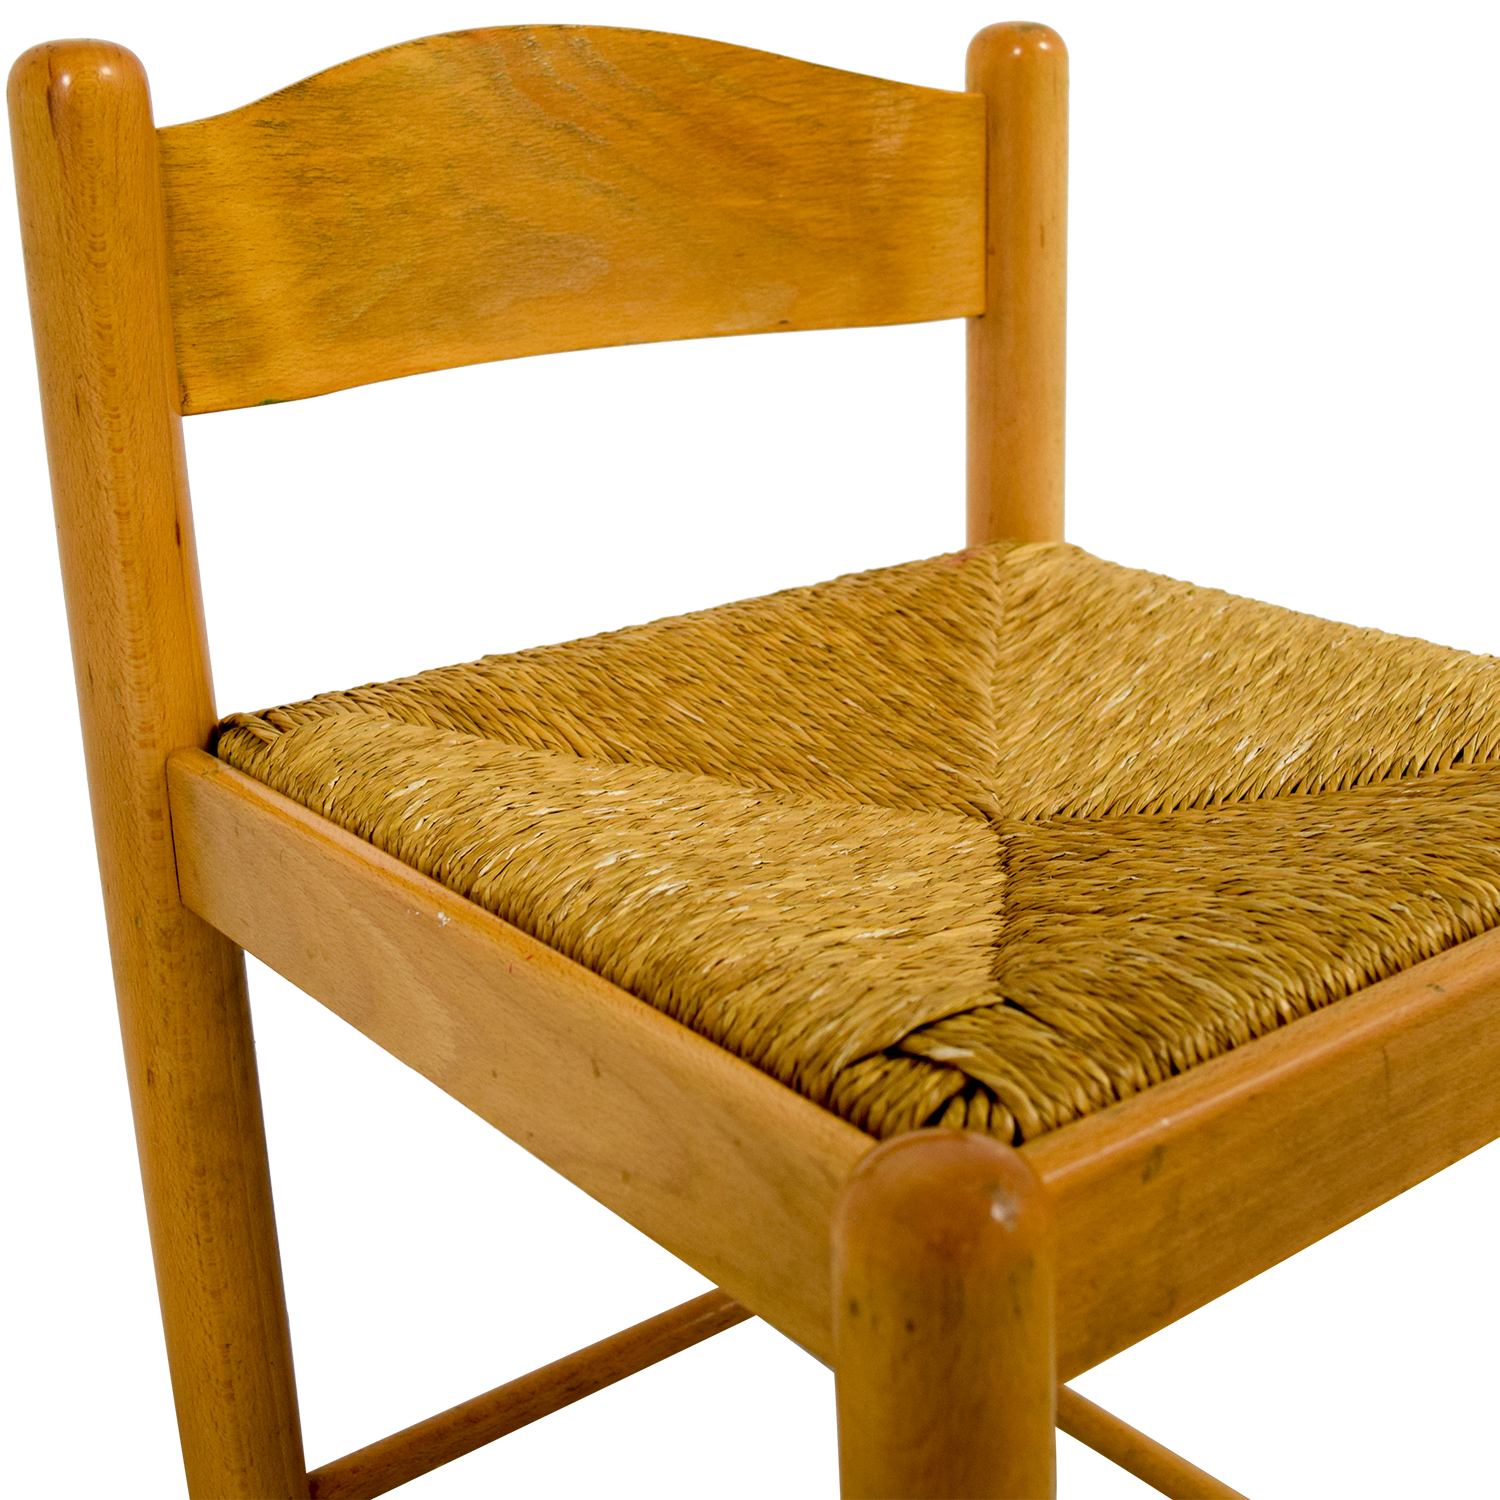 Wicker Wooden Stool coupon